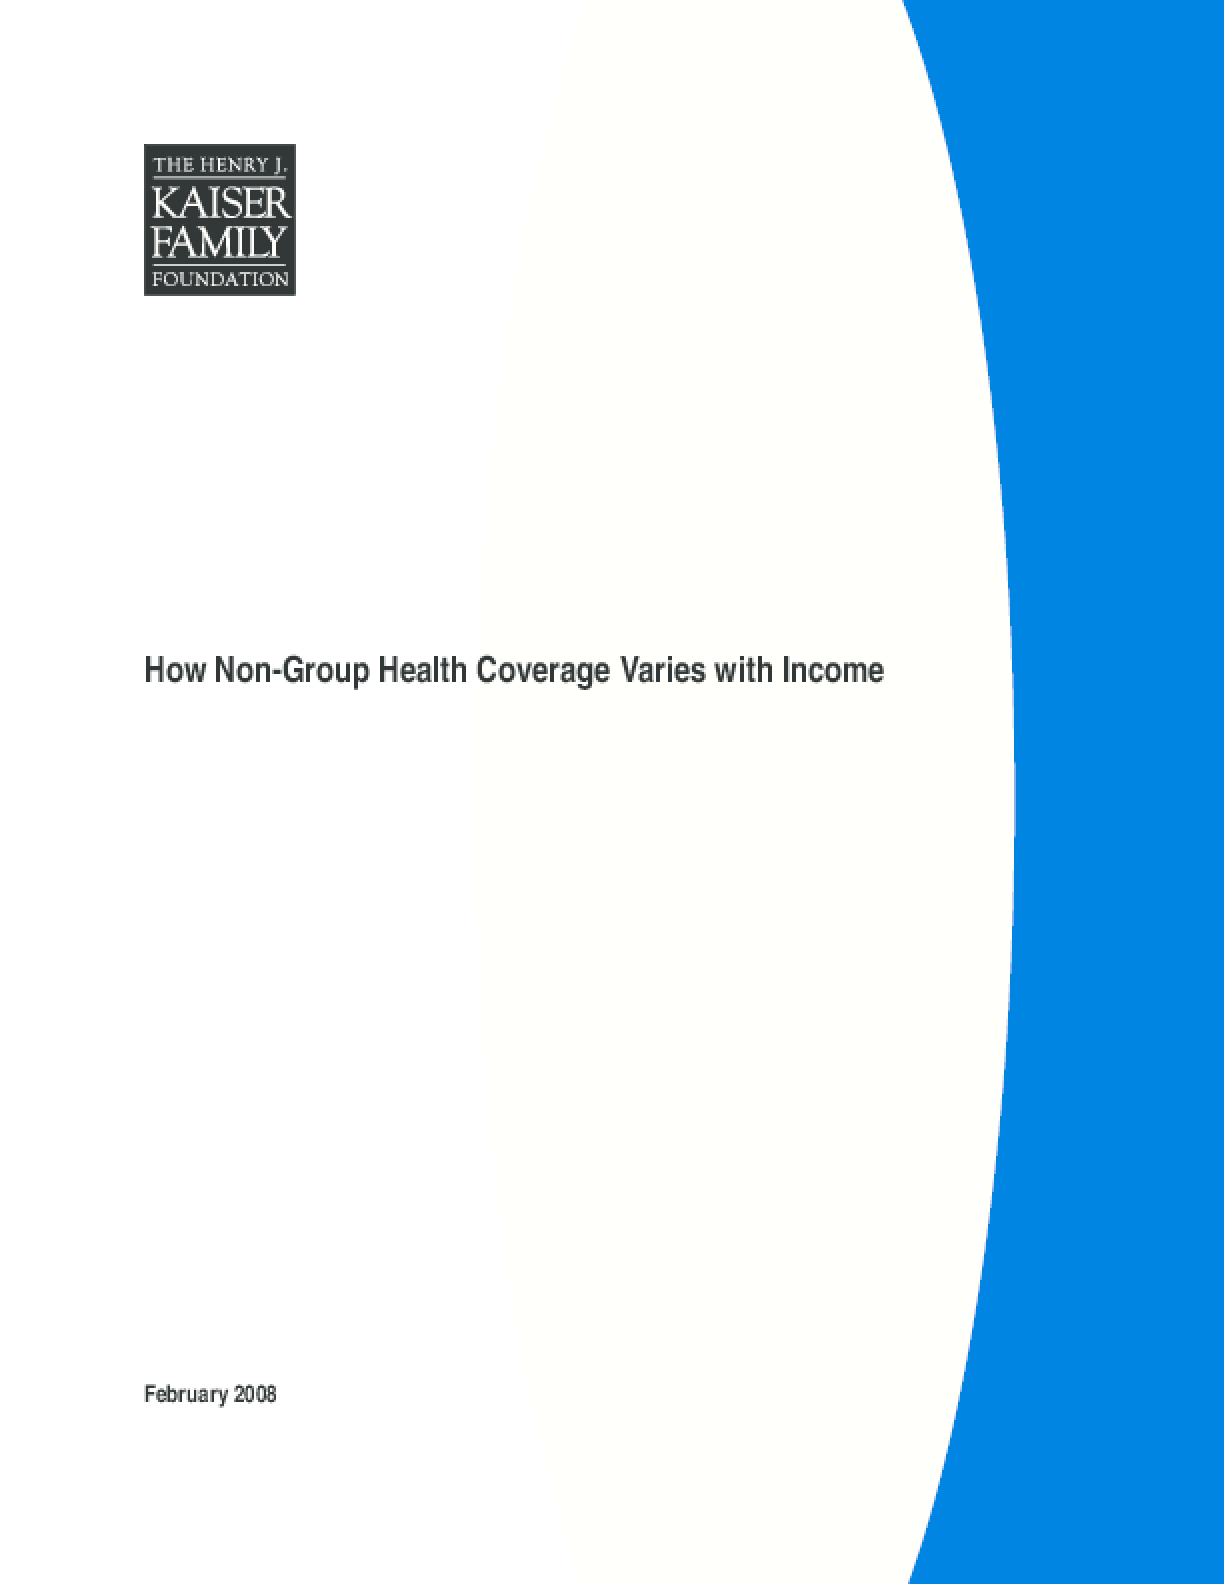 How Non-Group Health Coverage Varies with Income